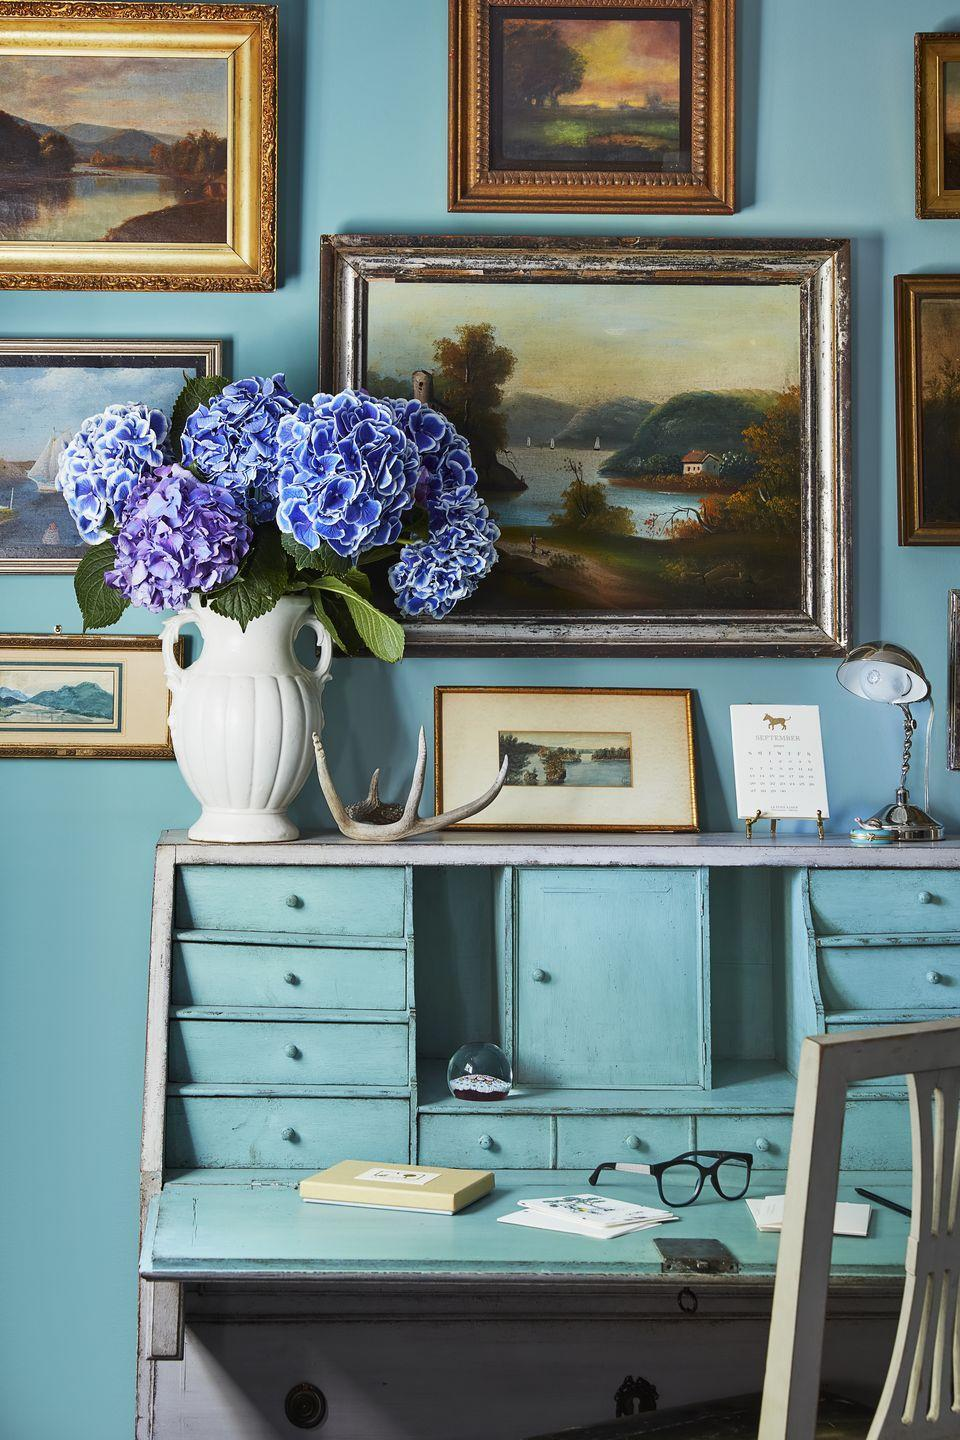 <p><strong>Paint Color: </strong>Madison Avenue by Benjamin Moore</p><p>Sheila Bridge's office nook is painted in a cheerful shade of teal that is sure to spark creativity. </p>